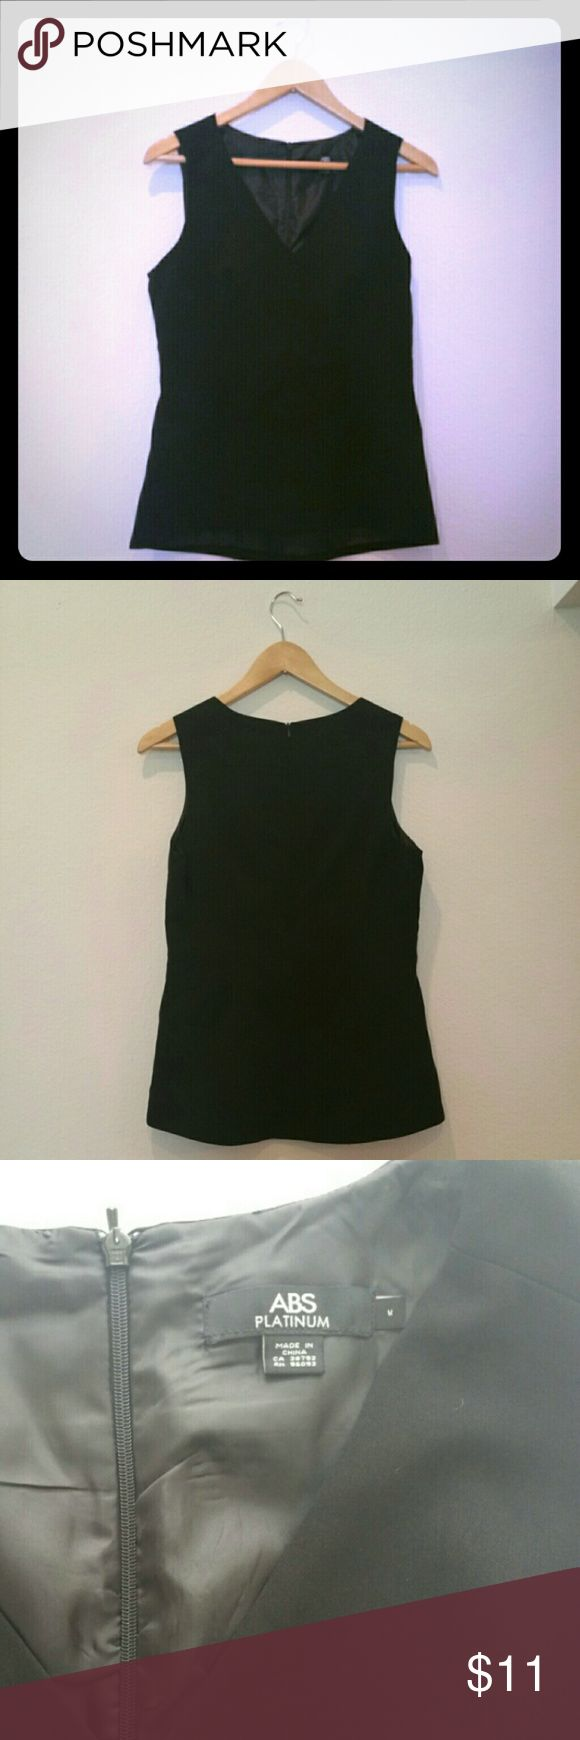 """ABS Platinum Black Peplum Top Sleeveless V-neck fully lined top. Slight hi-lo feature. 19"""" bust, 25"""" length. Abs Platinum Tops Blouses"""